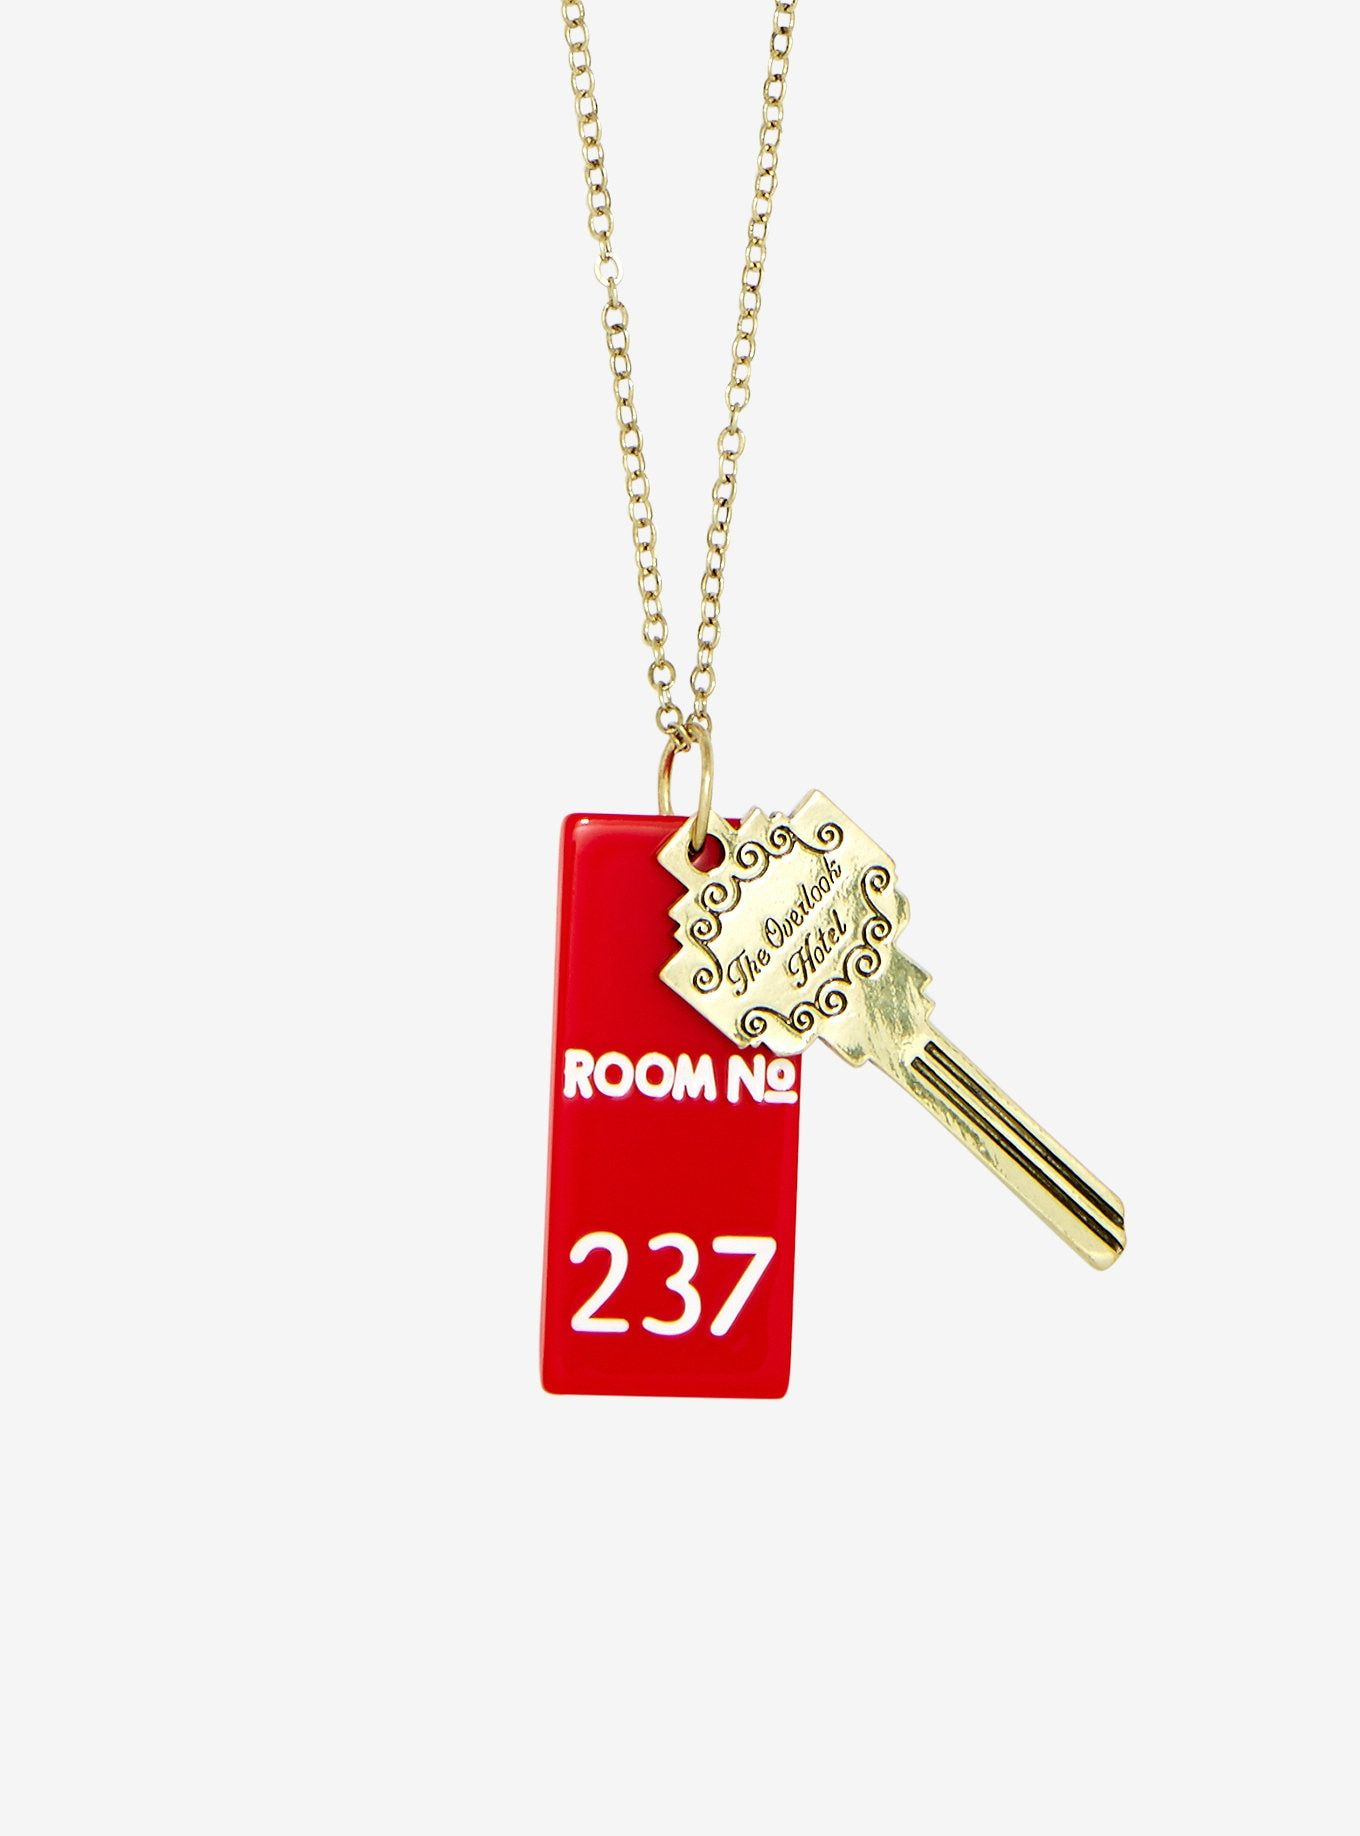 The Shining Overlook Hotel Key Necklace Key Necklace Hand